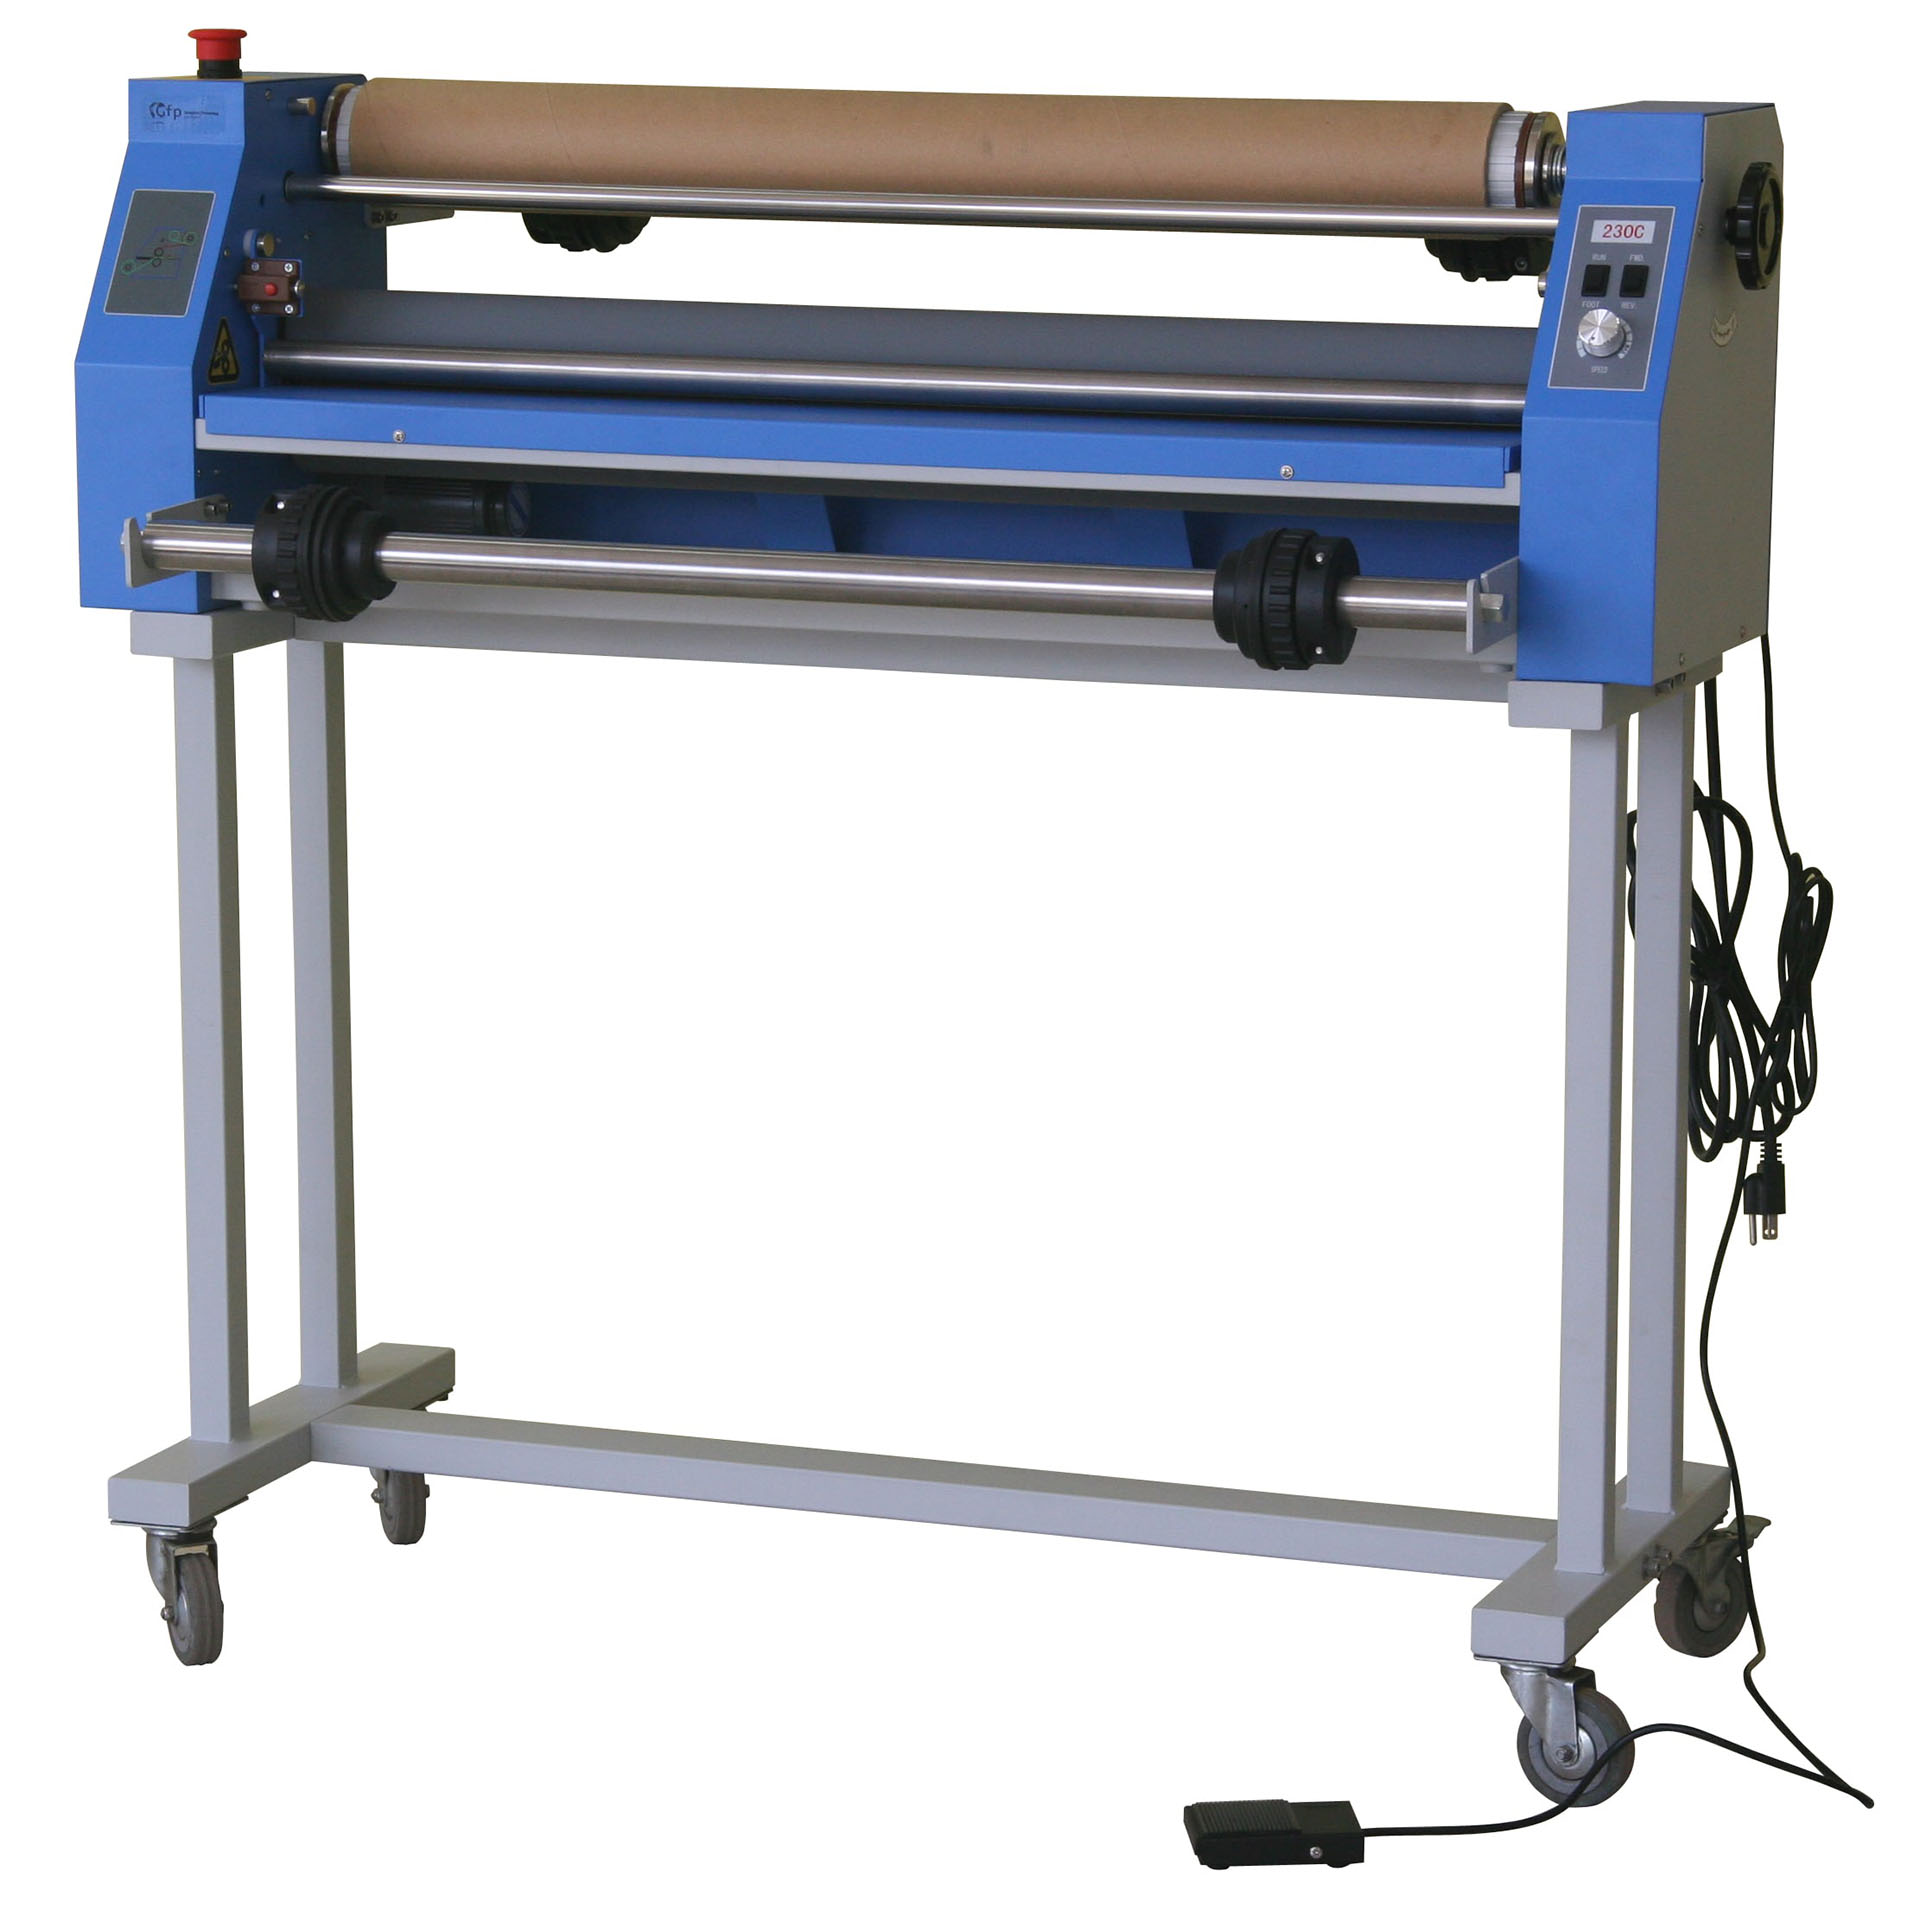 Graphic Finishing Partners 200 Series Cold Laminator